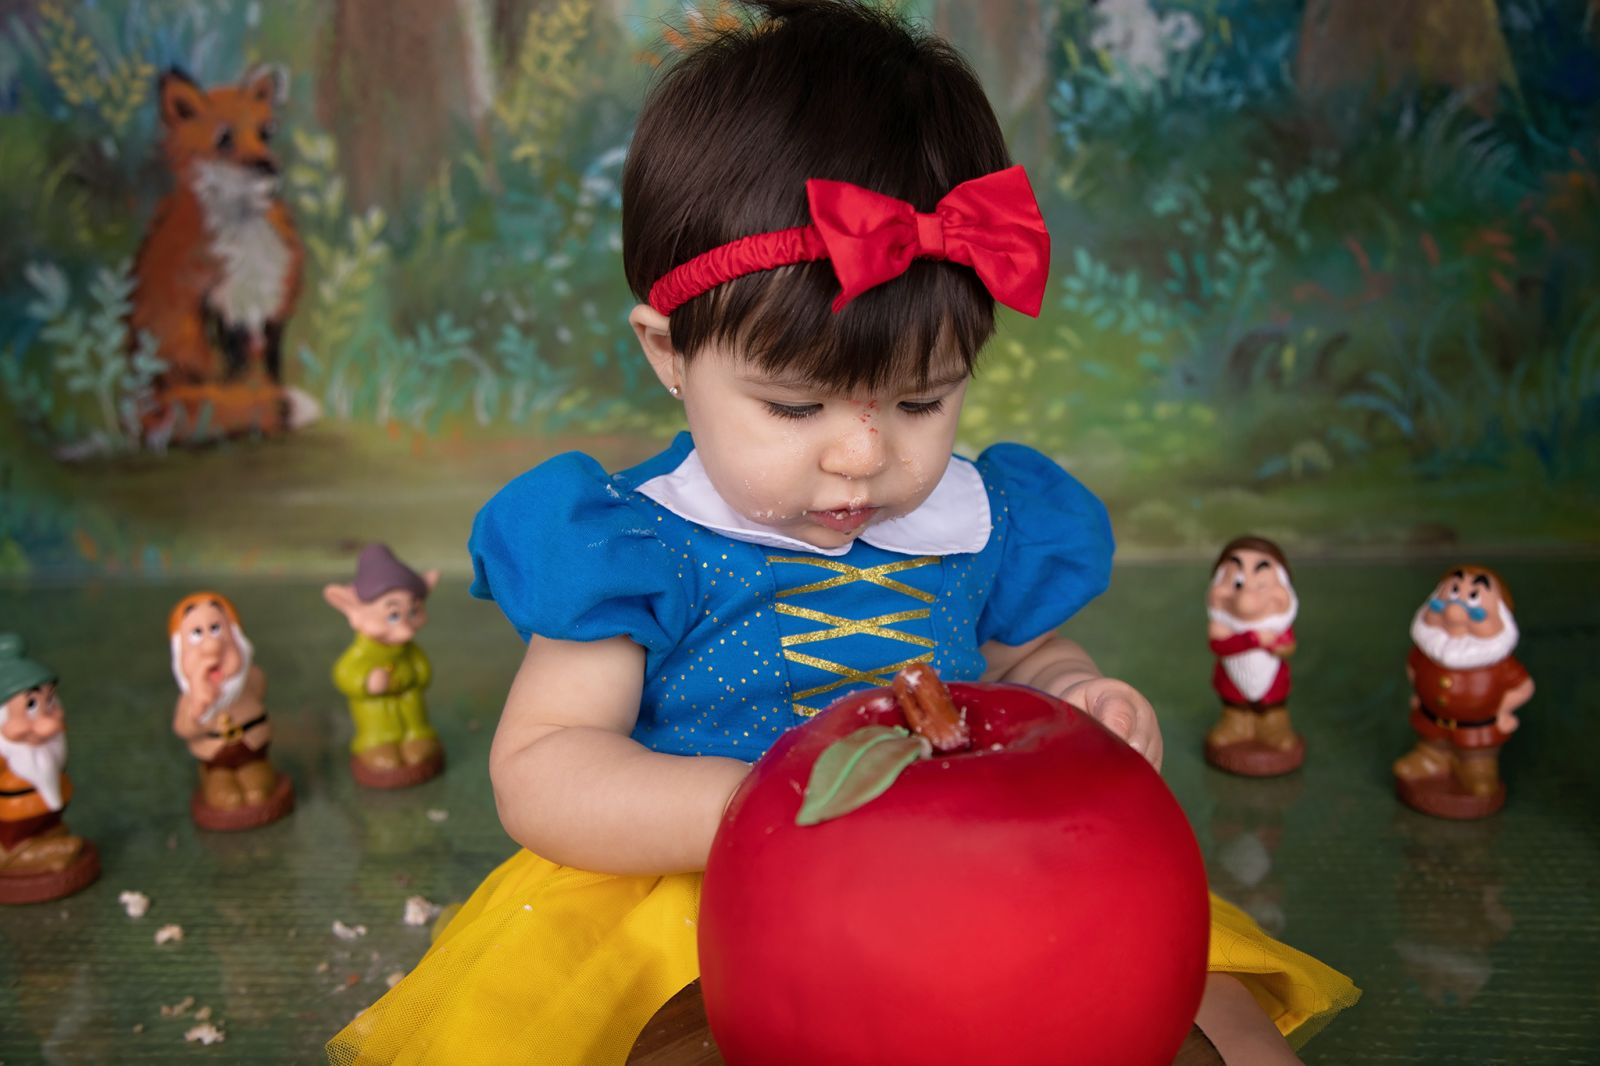 Snow-White-Cake-Smash-Newborn-Photographer-Photography-Joshua-Ft-Fort-Worth-Dallas-DFW-Joshua-Alvarado-Crowley-Cleburne-Arlington-Kid-Pictures